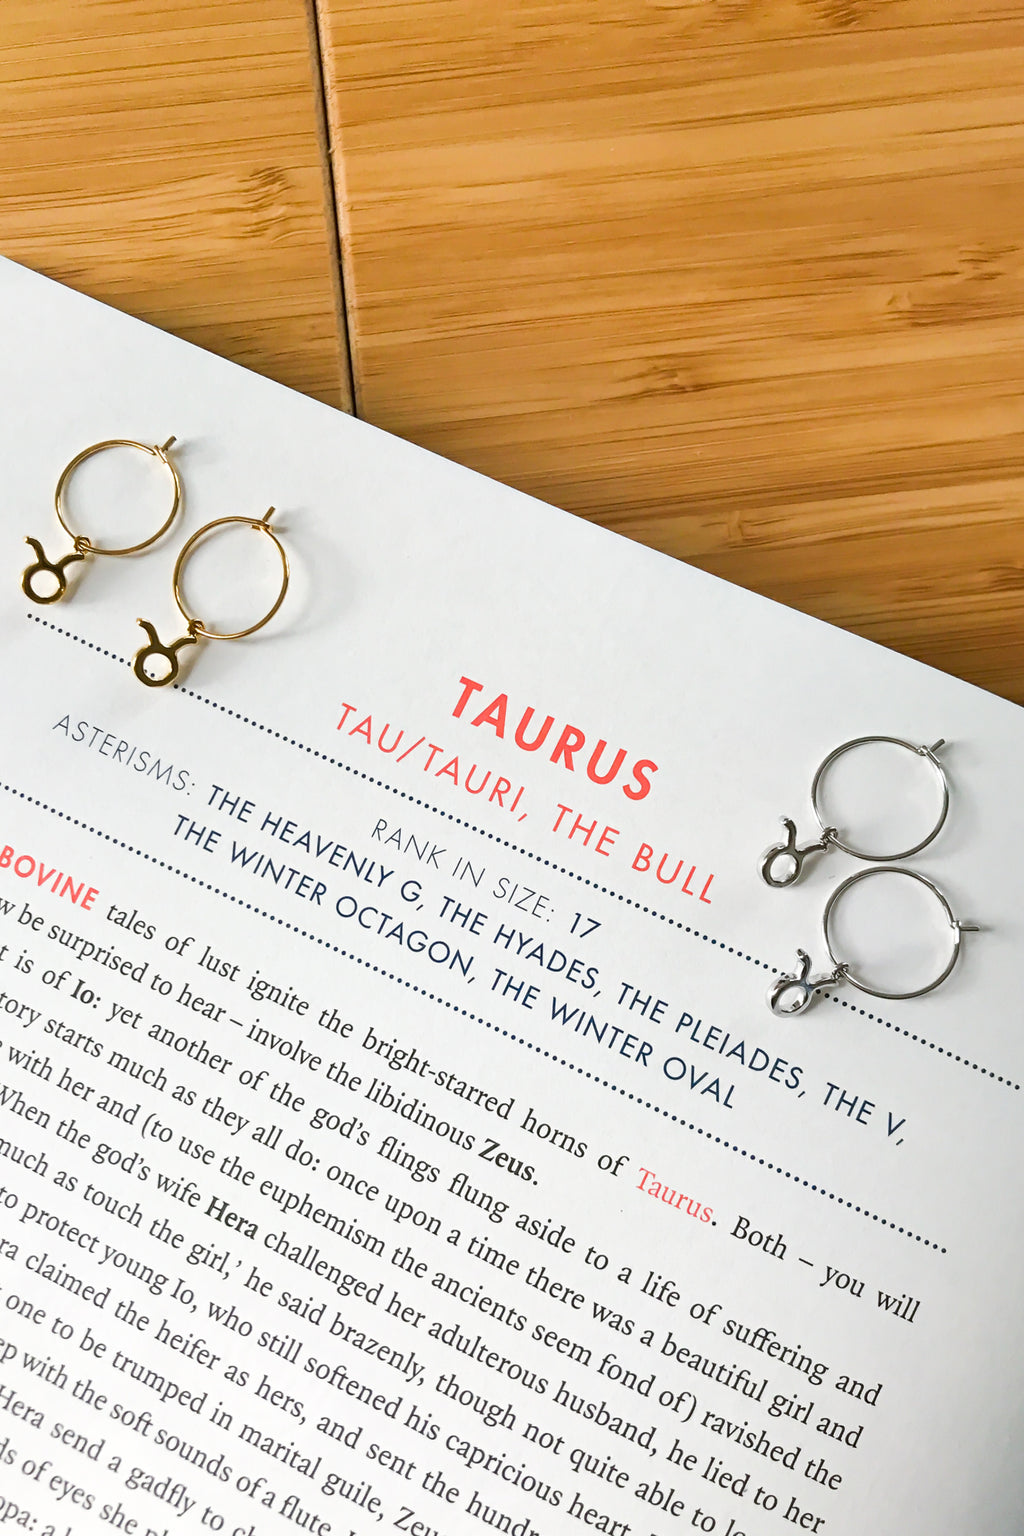 Taurus mini hoop earrings